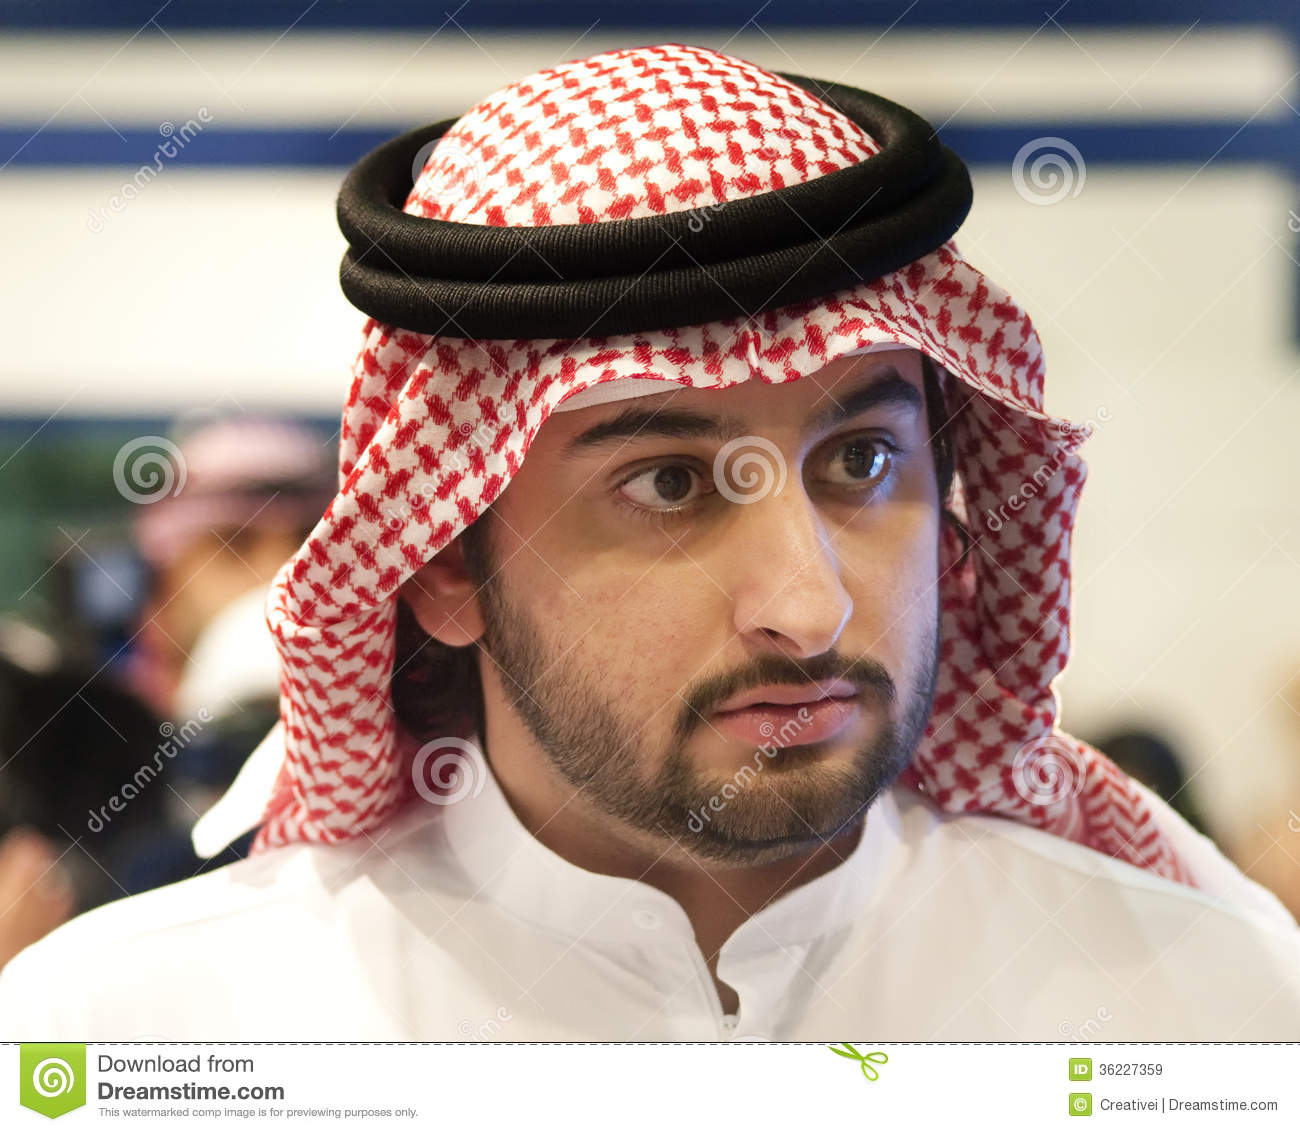 Sheikh Maktoum Bin Mohammed Bin Rashid Al Maktoum Royalty Free Stock Images - sheikh-maktoum-bin-mohammed-bin-rashid-al-maktoum-dubai-uae-april-deputy-ruler-dubai-islamic-peace-conference-april-36227359